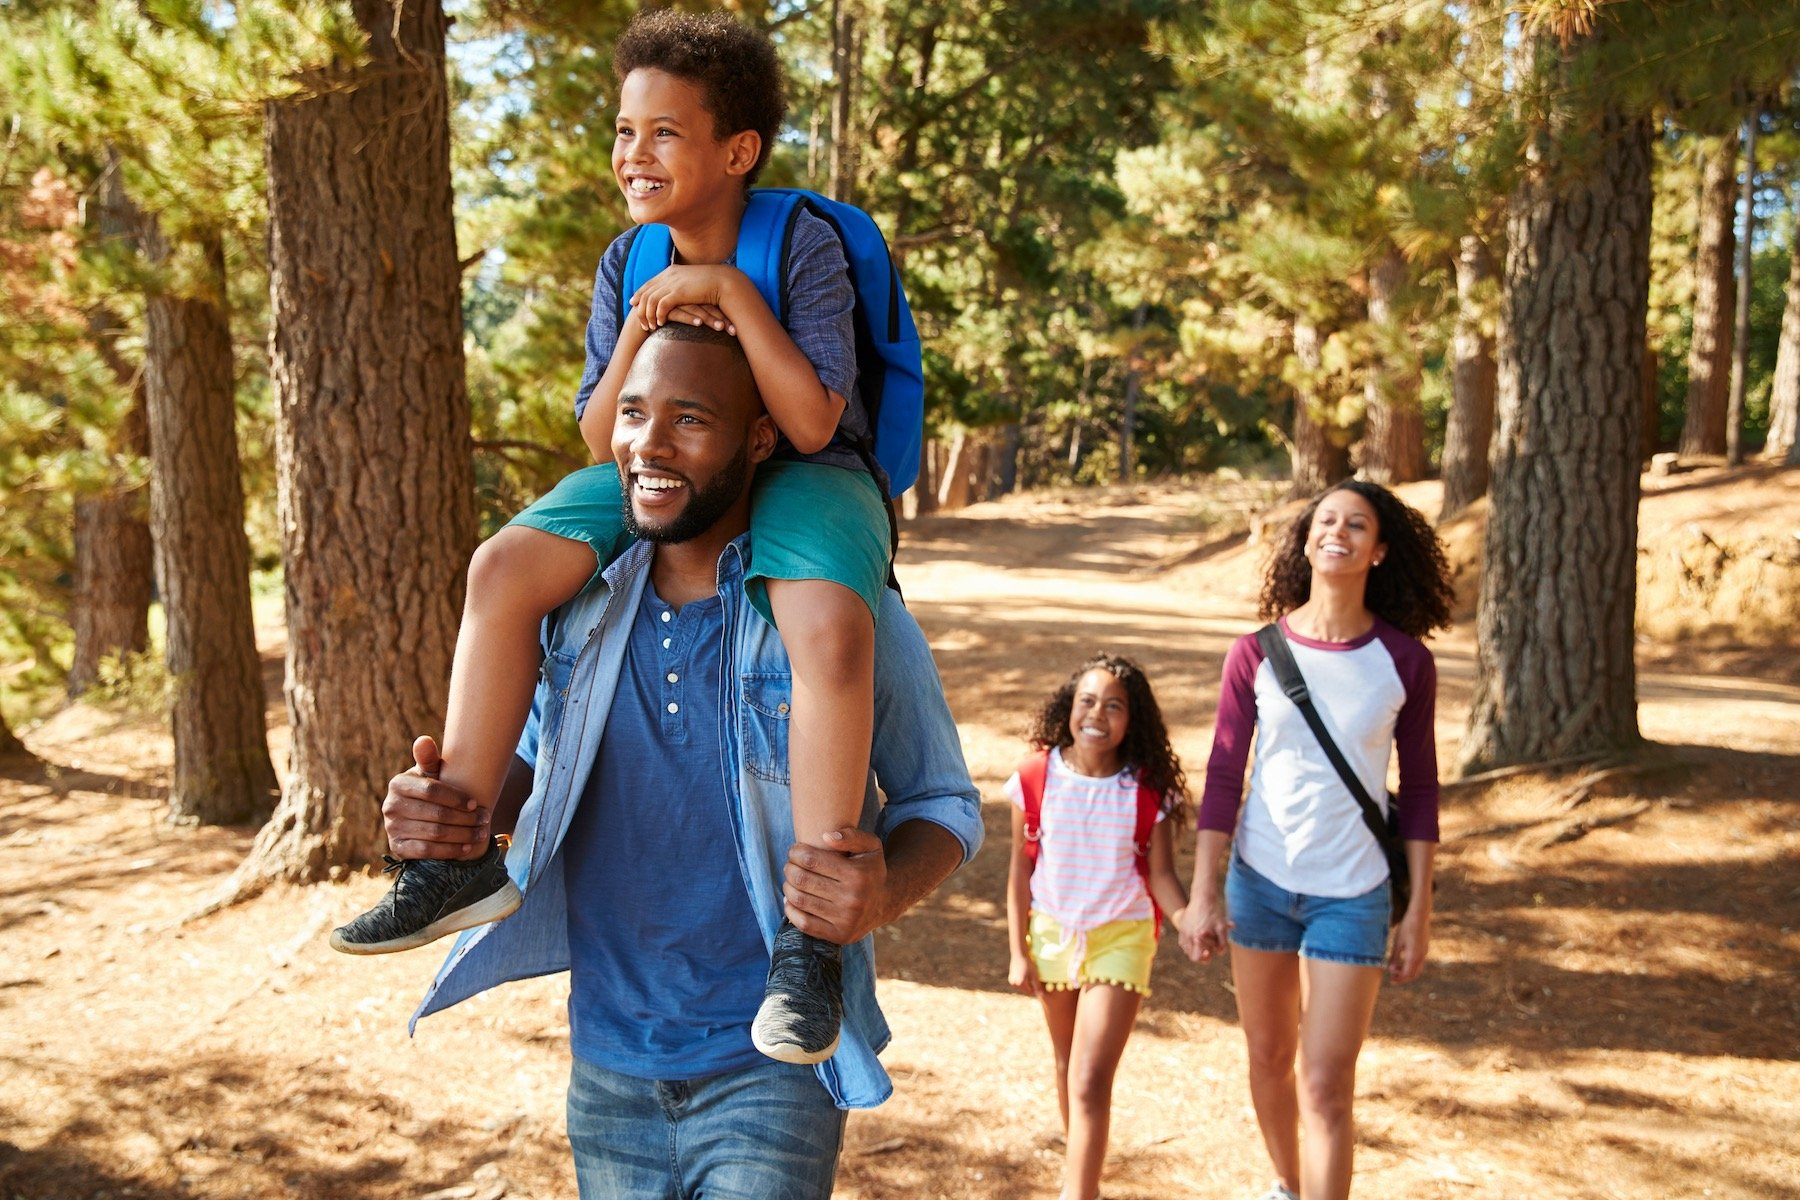 FAMILY HIKING THROUGH THE FOREST CHEERFULLY